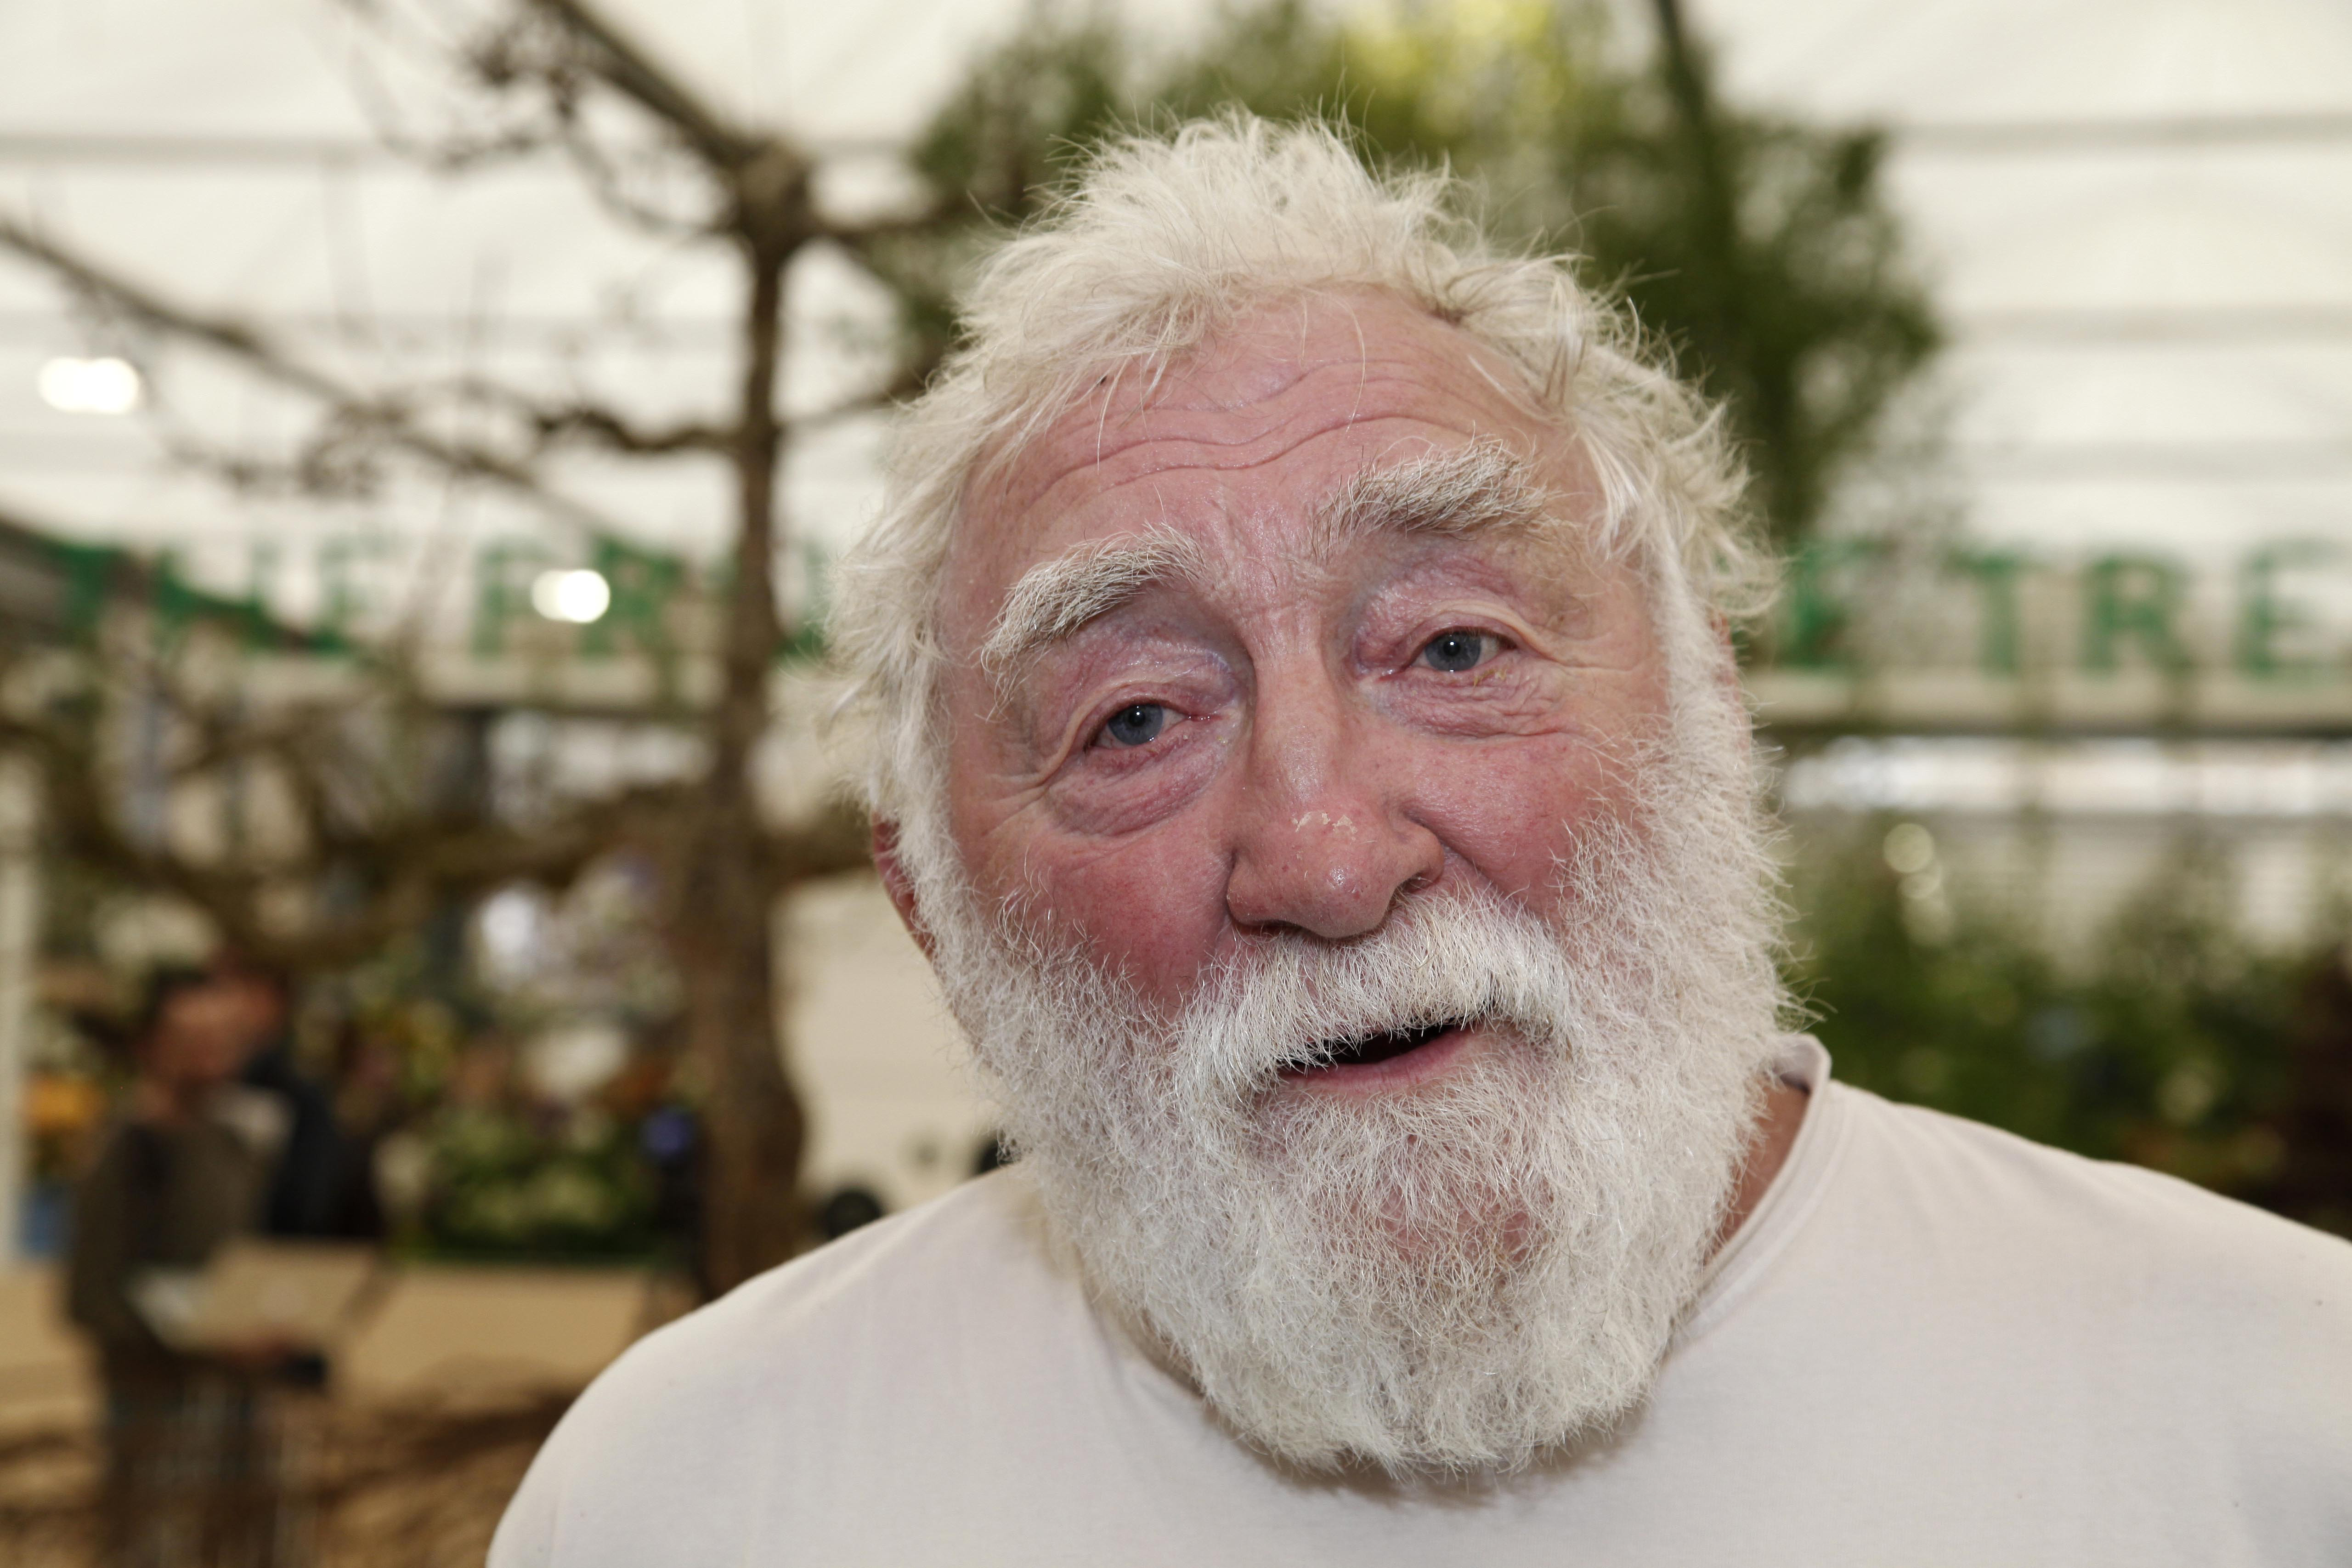 TV broadcaster David Bellamy has died aged 86